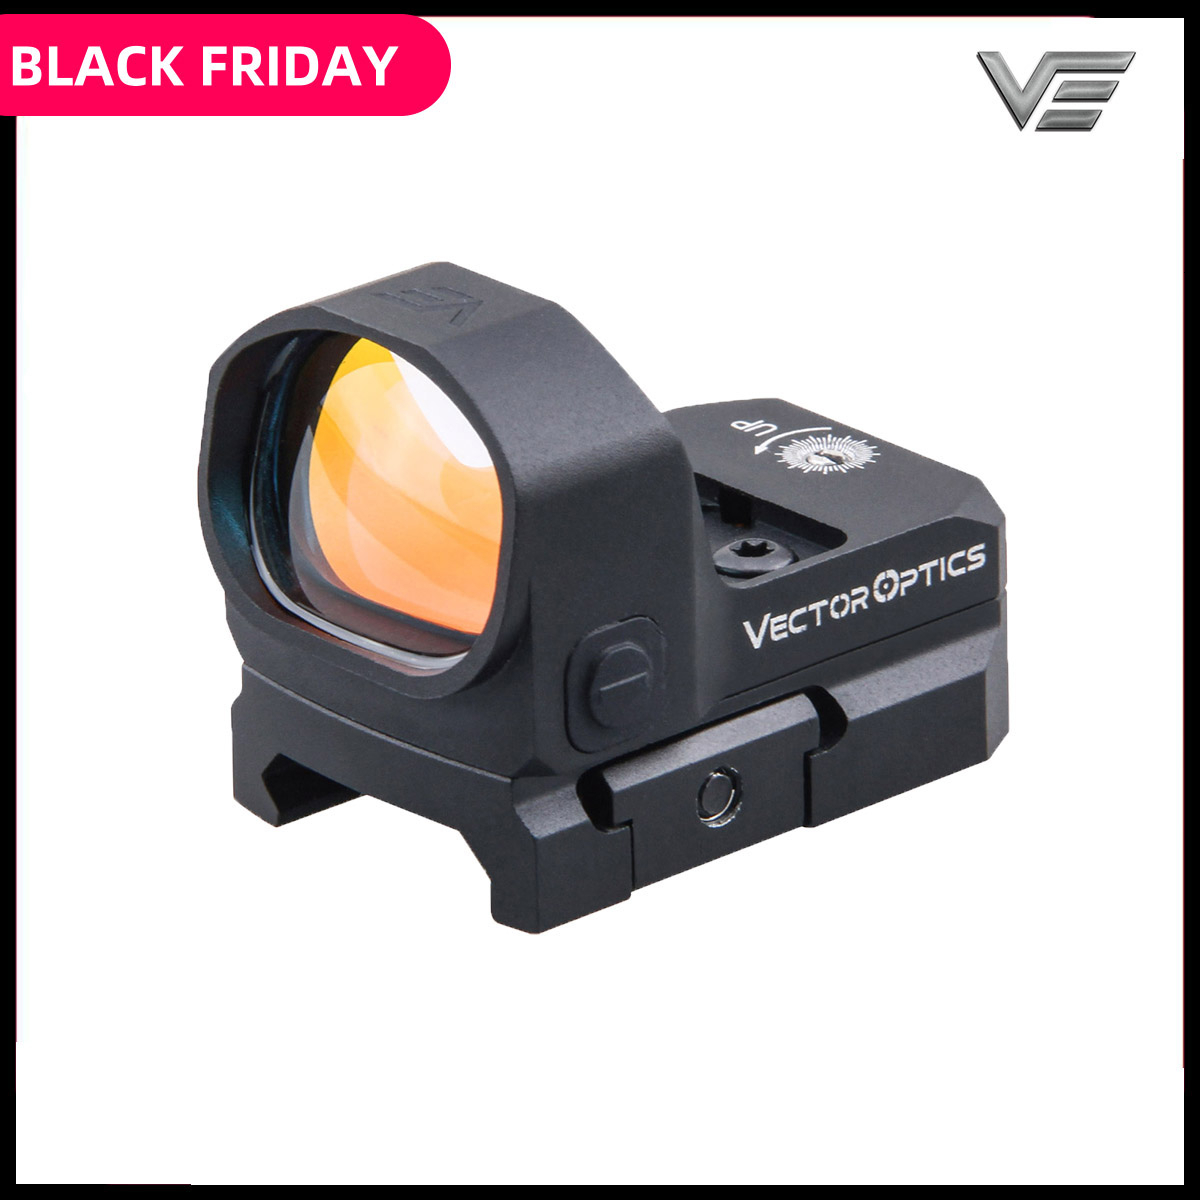 Vector Optics Frenzy 1x20x28 Big Window Size Tactical Red Dot Sight 3 MOA IPX6 Water Proof fit for Pistol 9mm Glock AR .223 .308 image